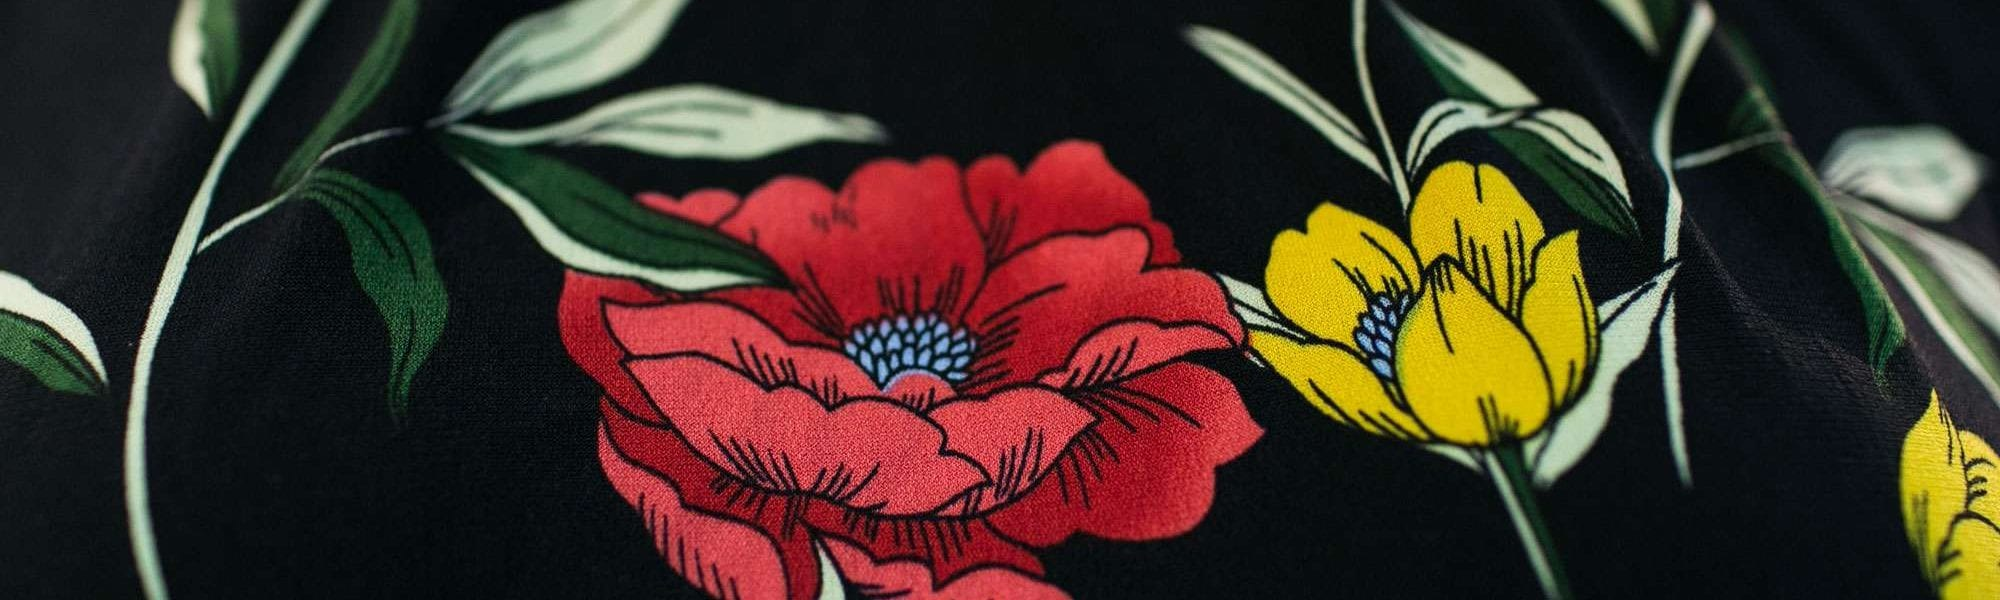 red and yellow flowers on black fabric